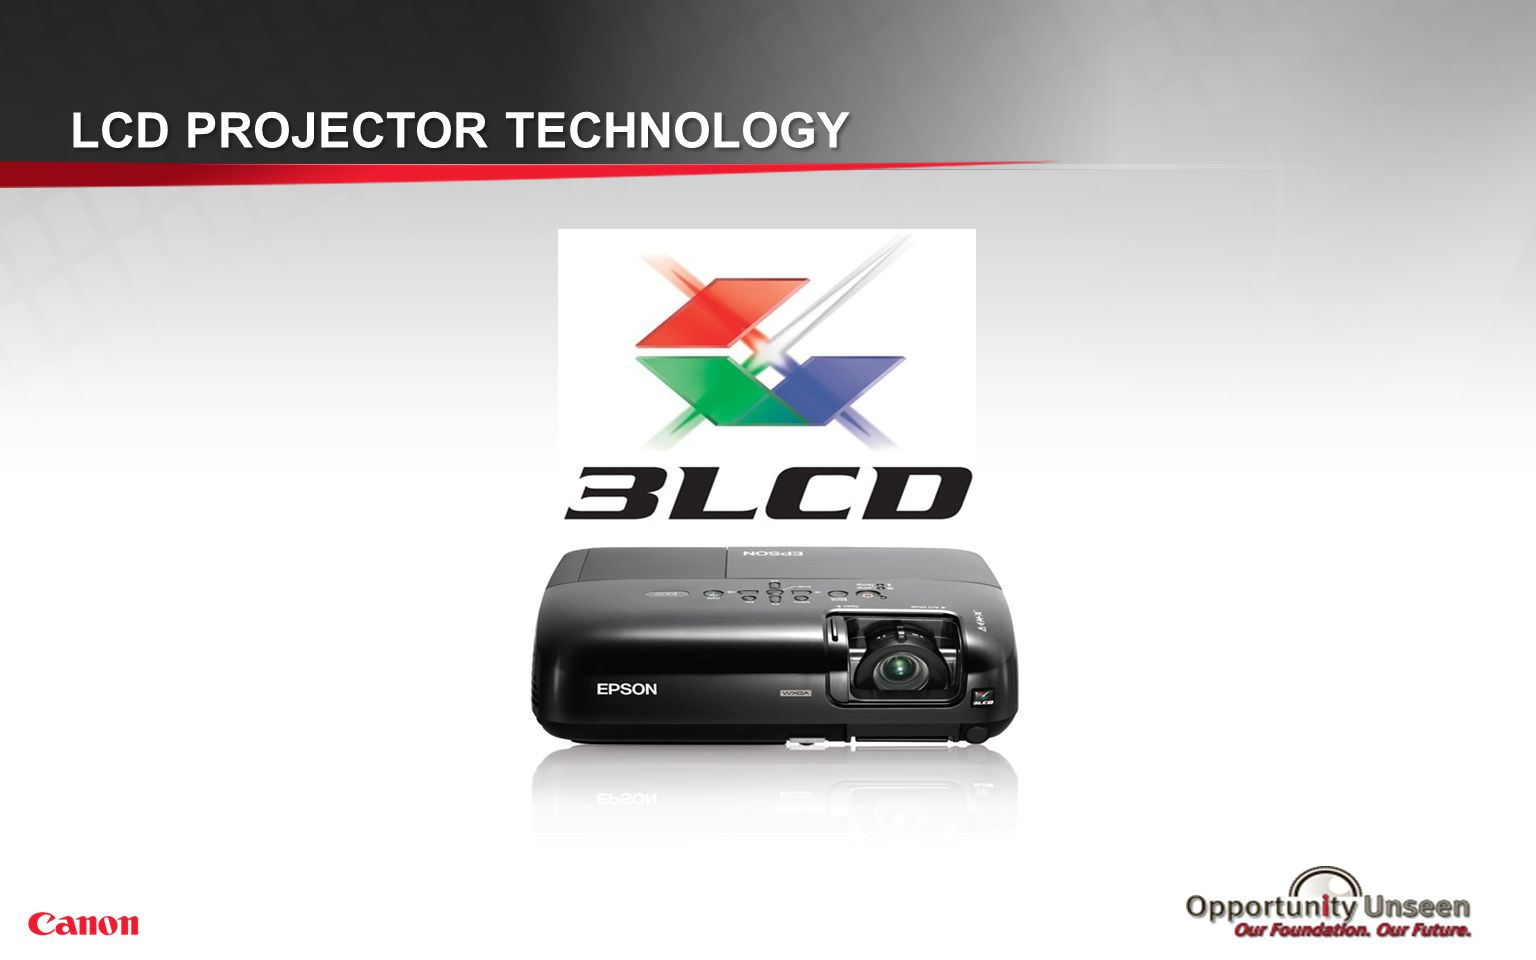 LCD PROJECTOR TECHNOLOGY